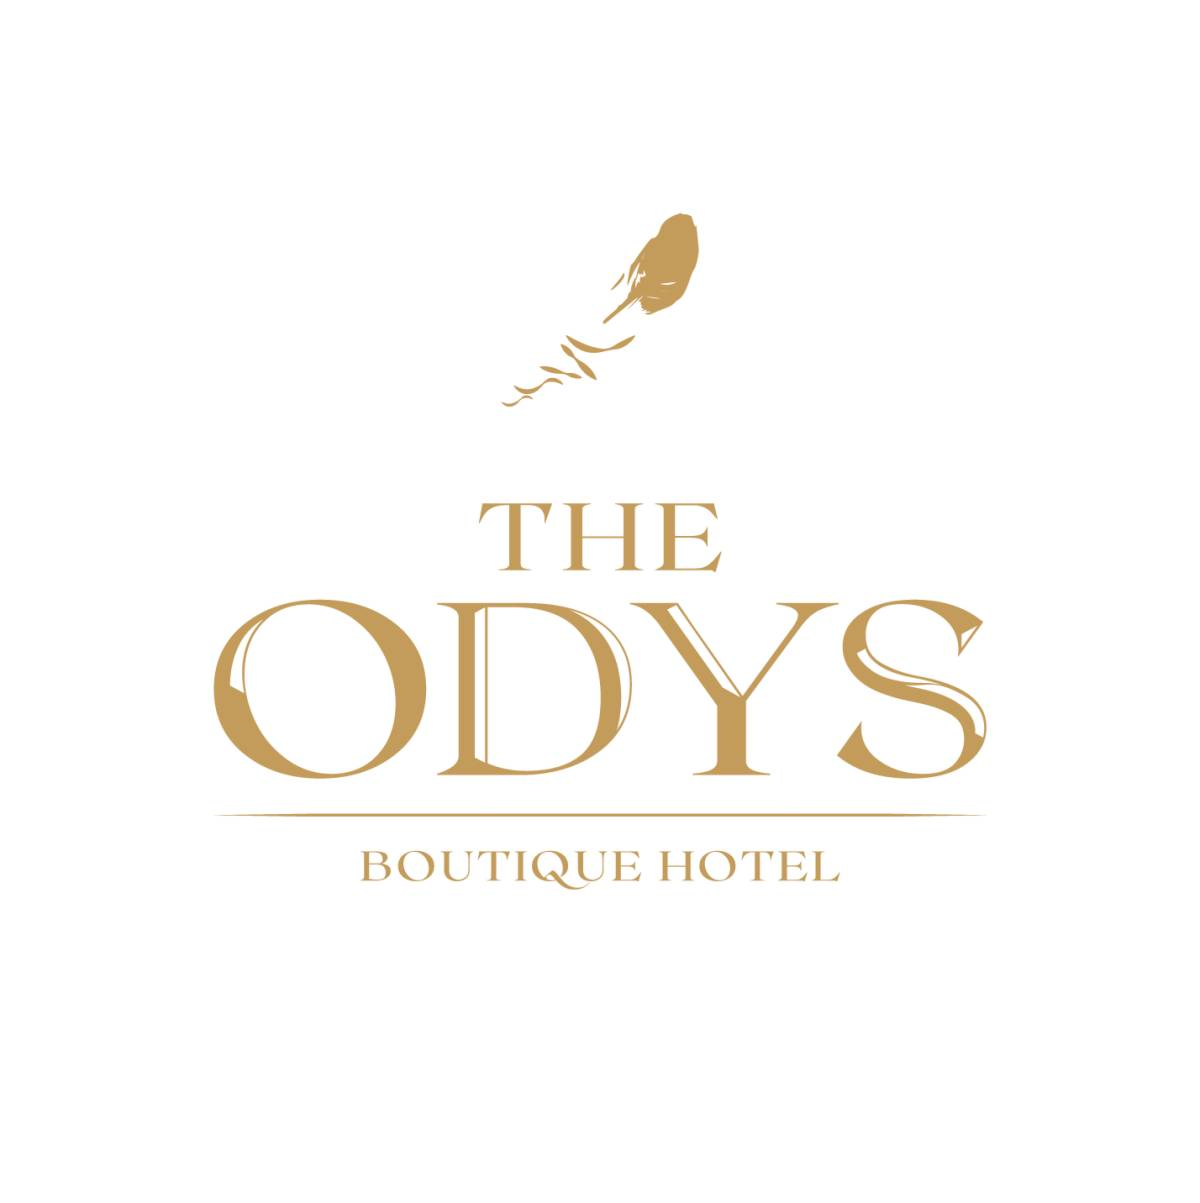 Odys Boutique Hotel Delivers Posh Hospitality with Timeless Design